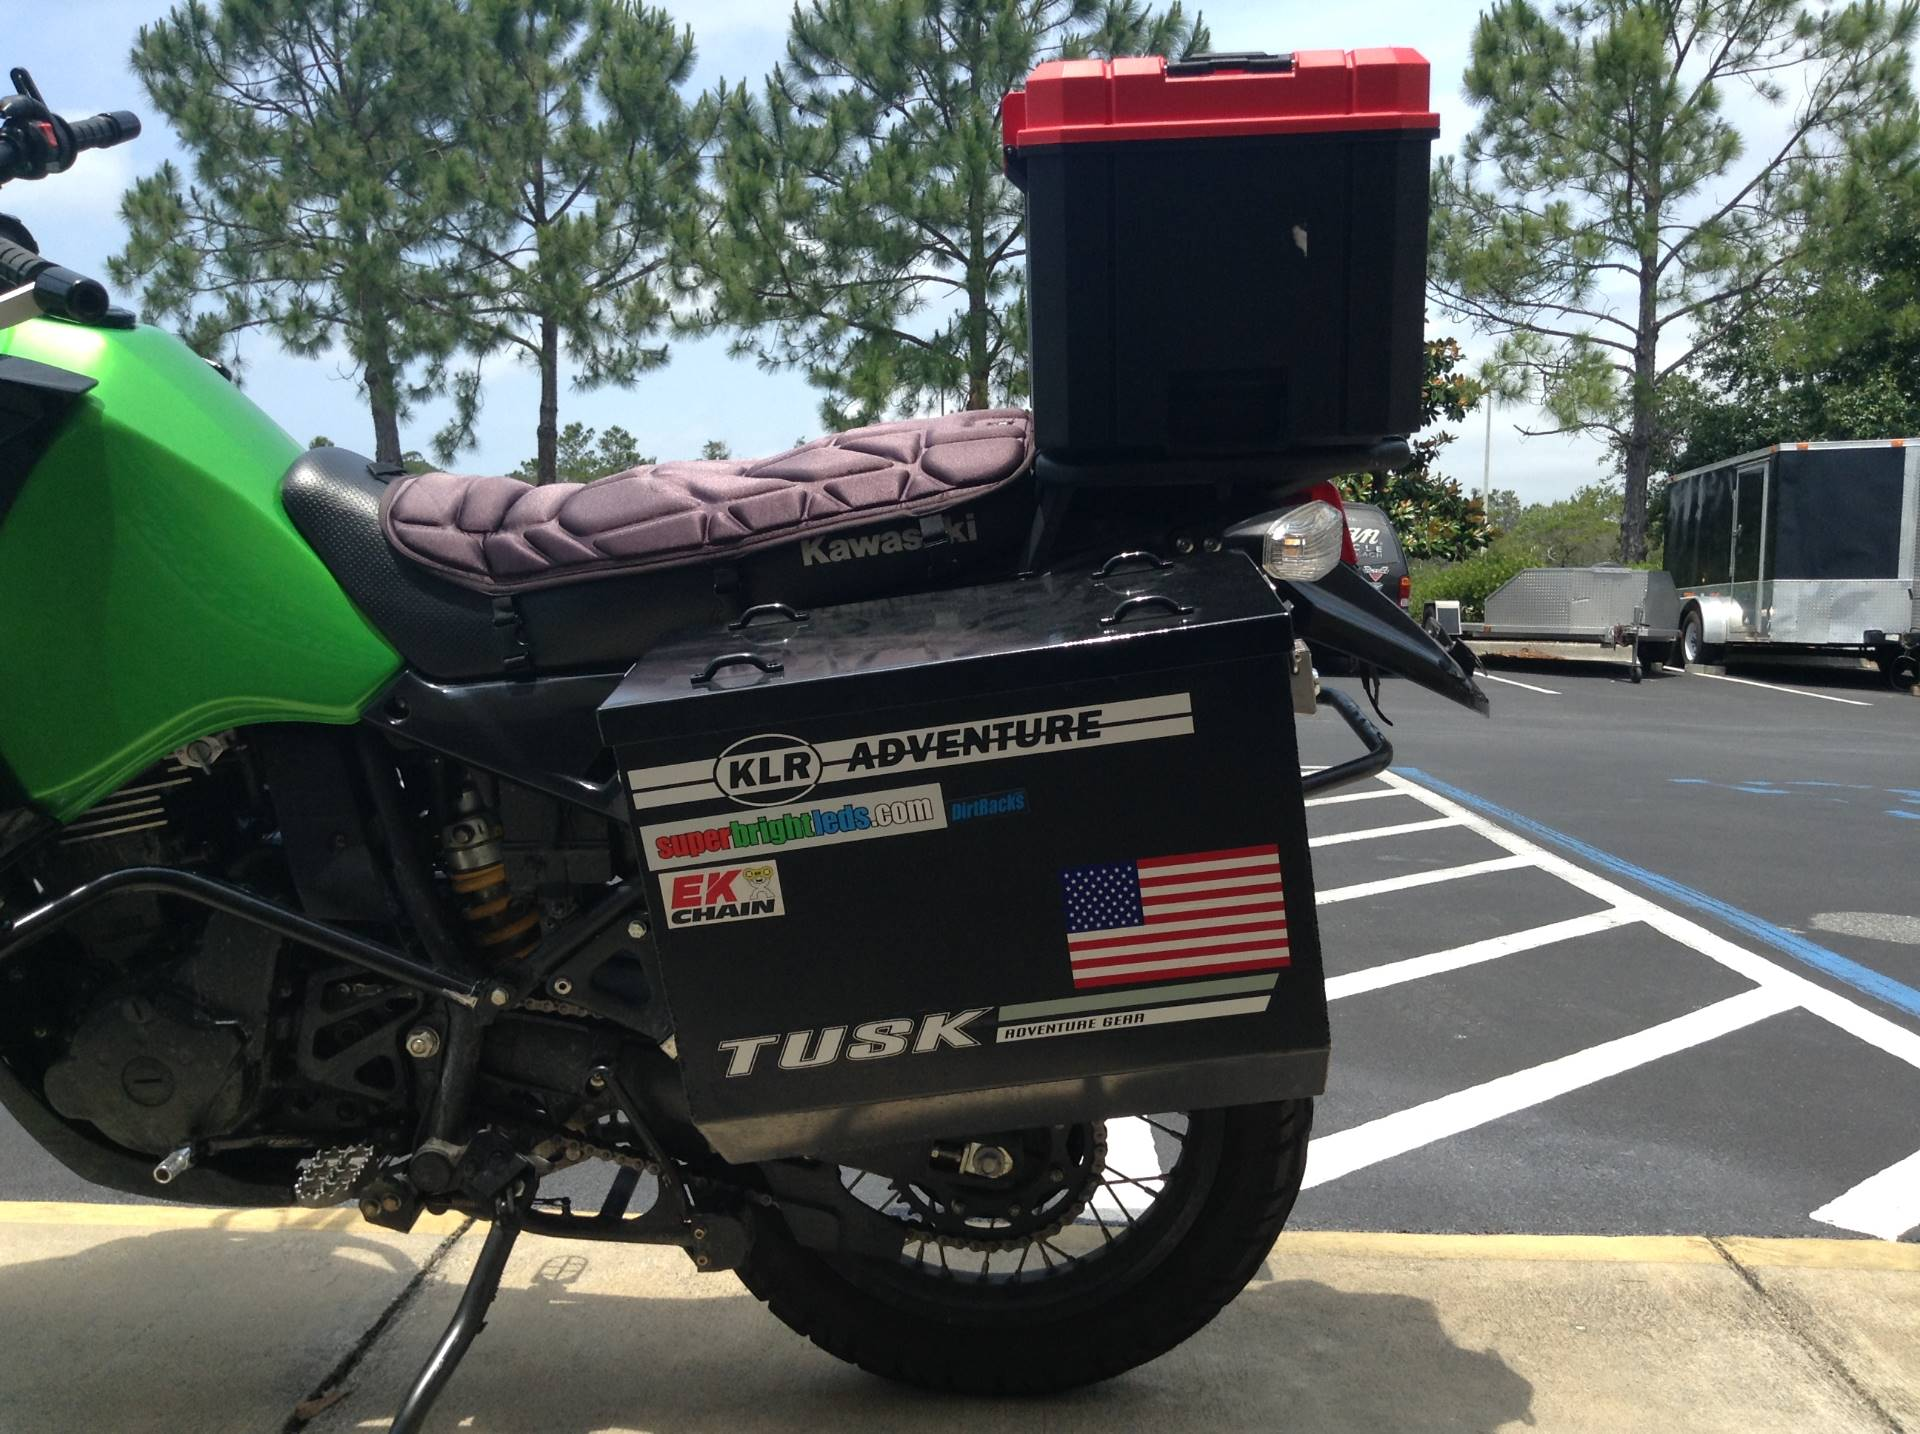 2016 KAWASAKI KLR 650 in Panama City Beach, Florida